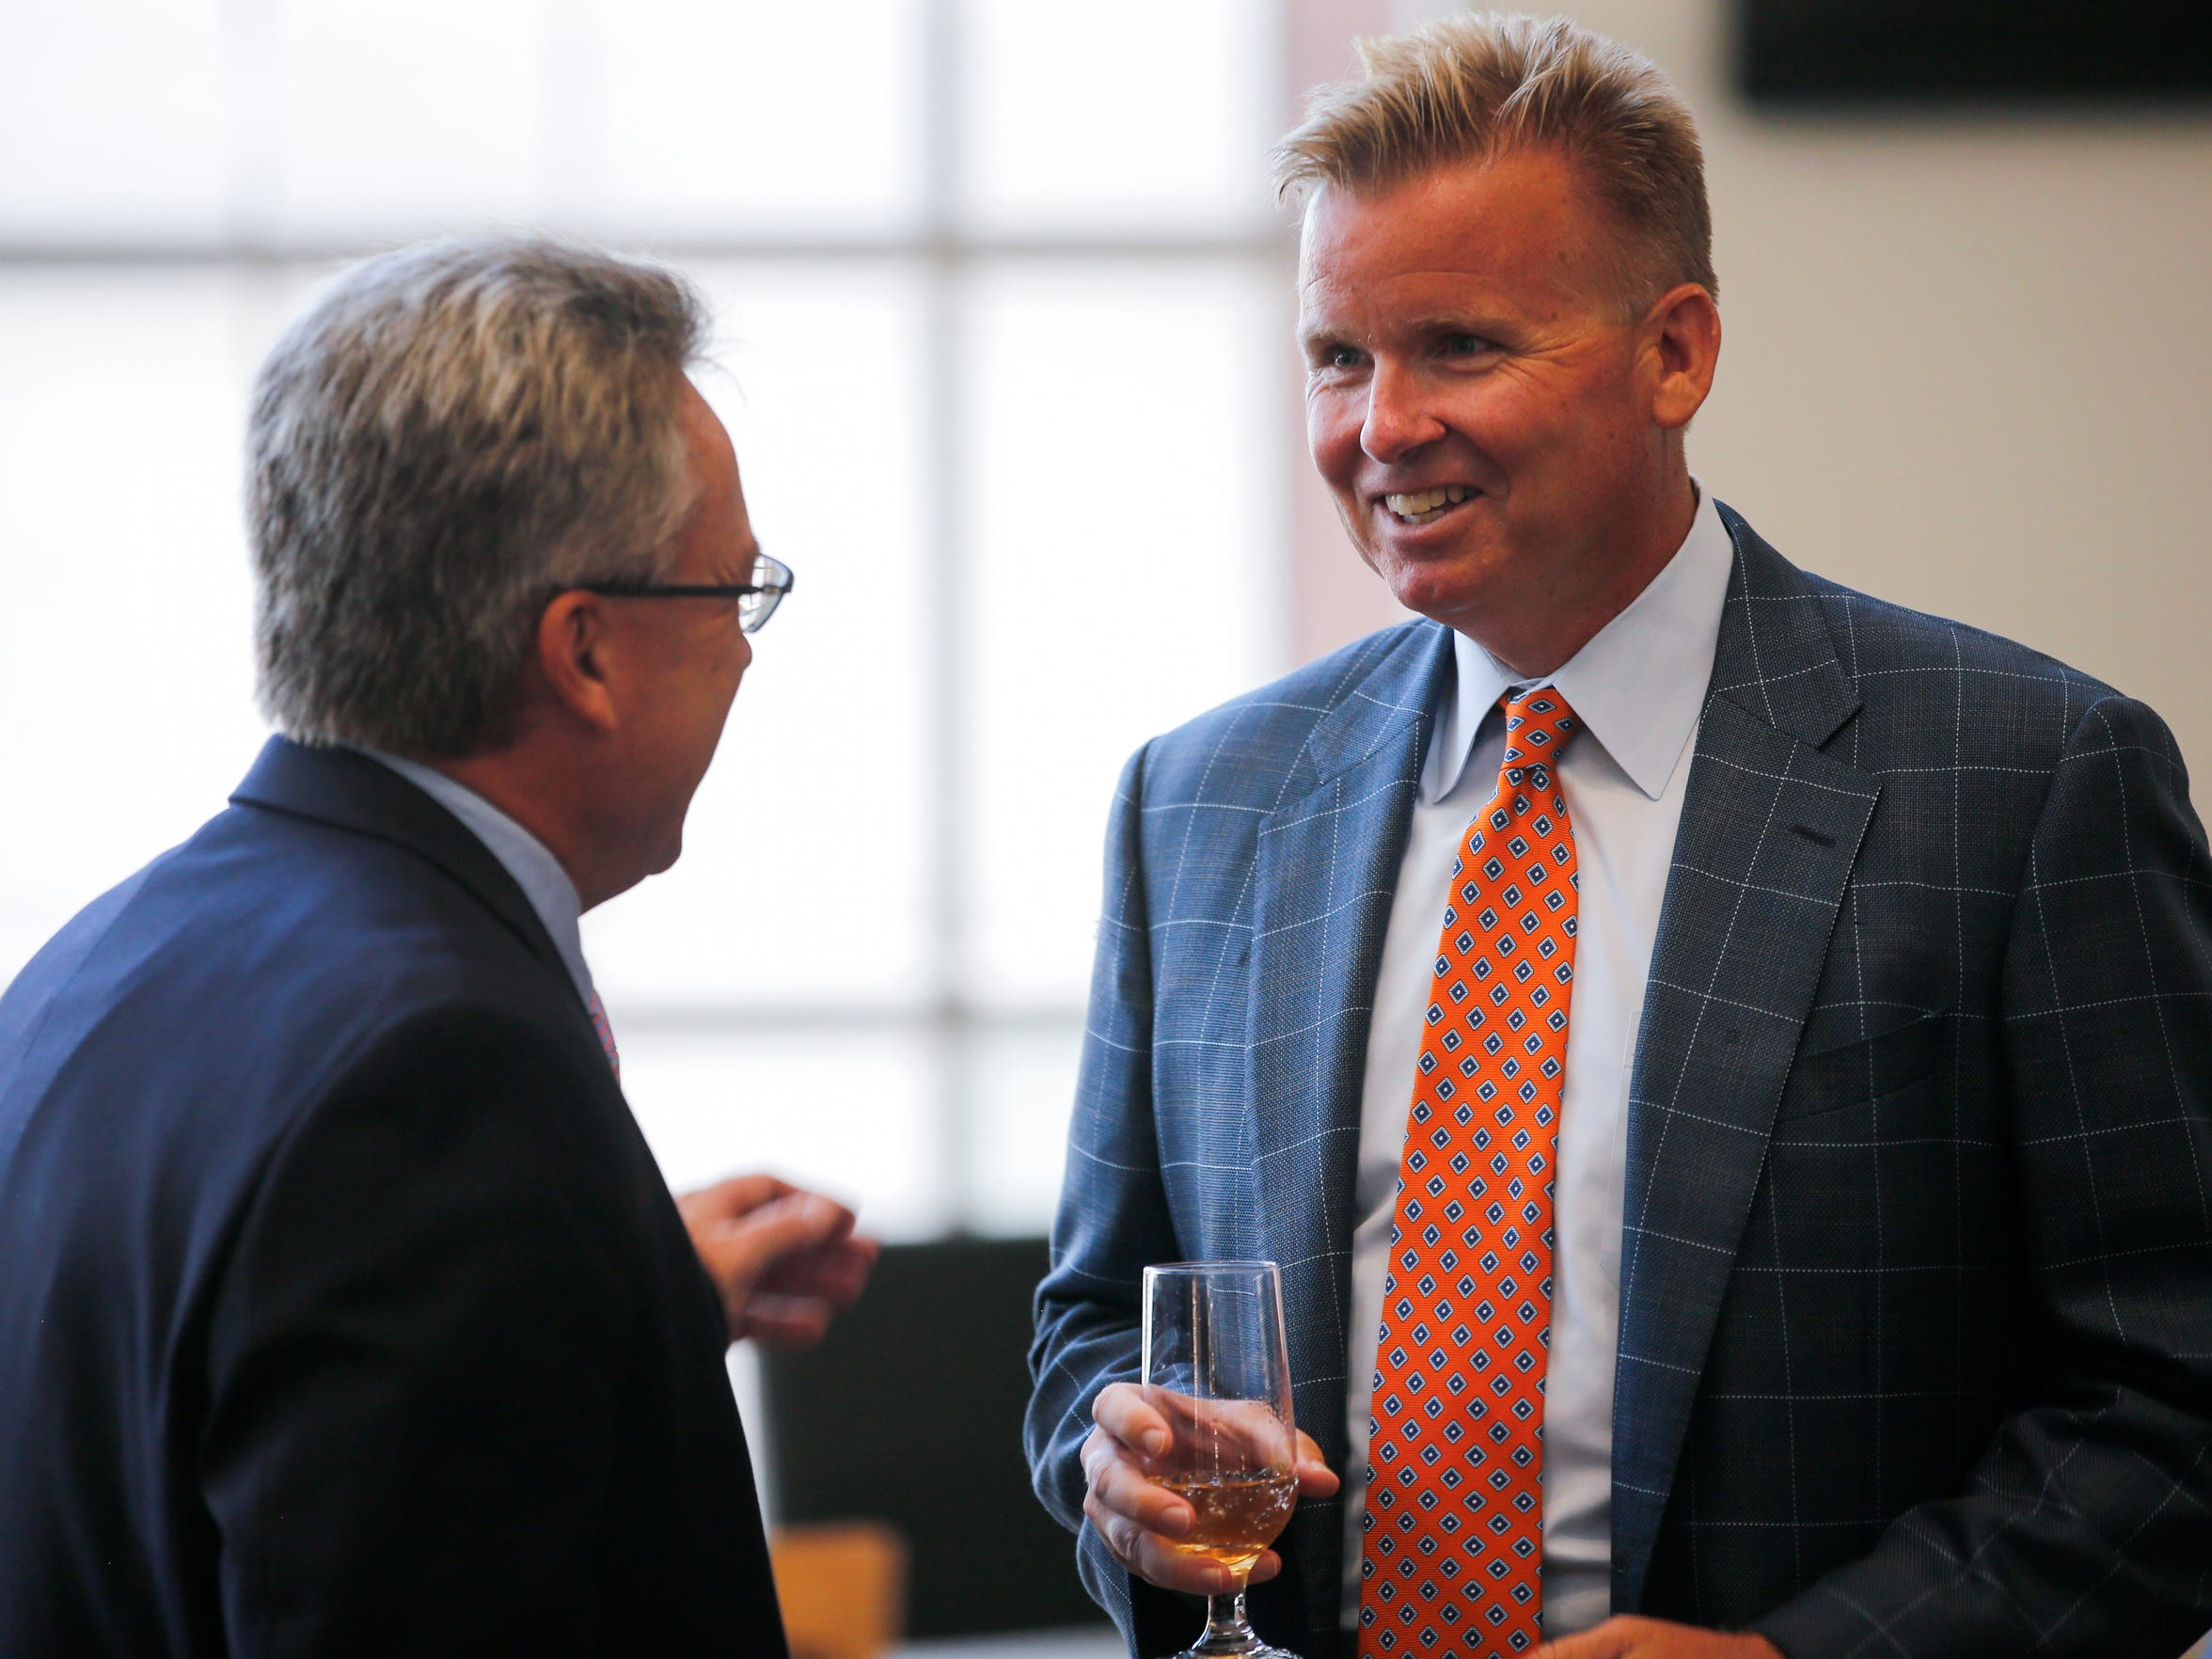 Cincinnati Bengals vice president Troy Blackburn during the team's media luncheon, Tuesday, July 25, 2017, at Paul Brown Stadium in Cincinnati. The Brown family is celebrating 50 years this year as owners of the Cincinnati Bengals franchise.